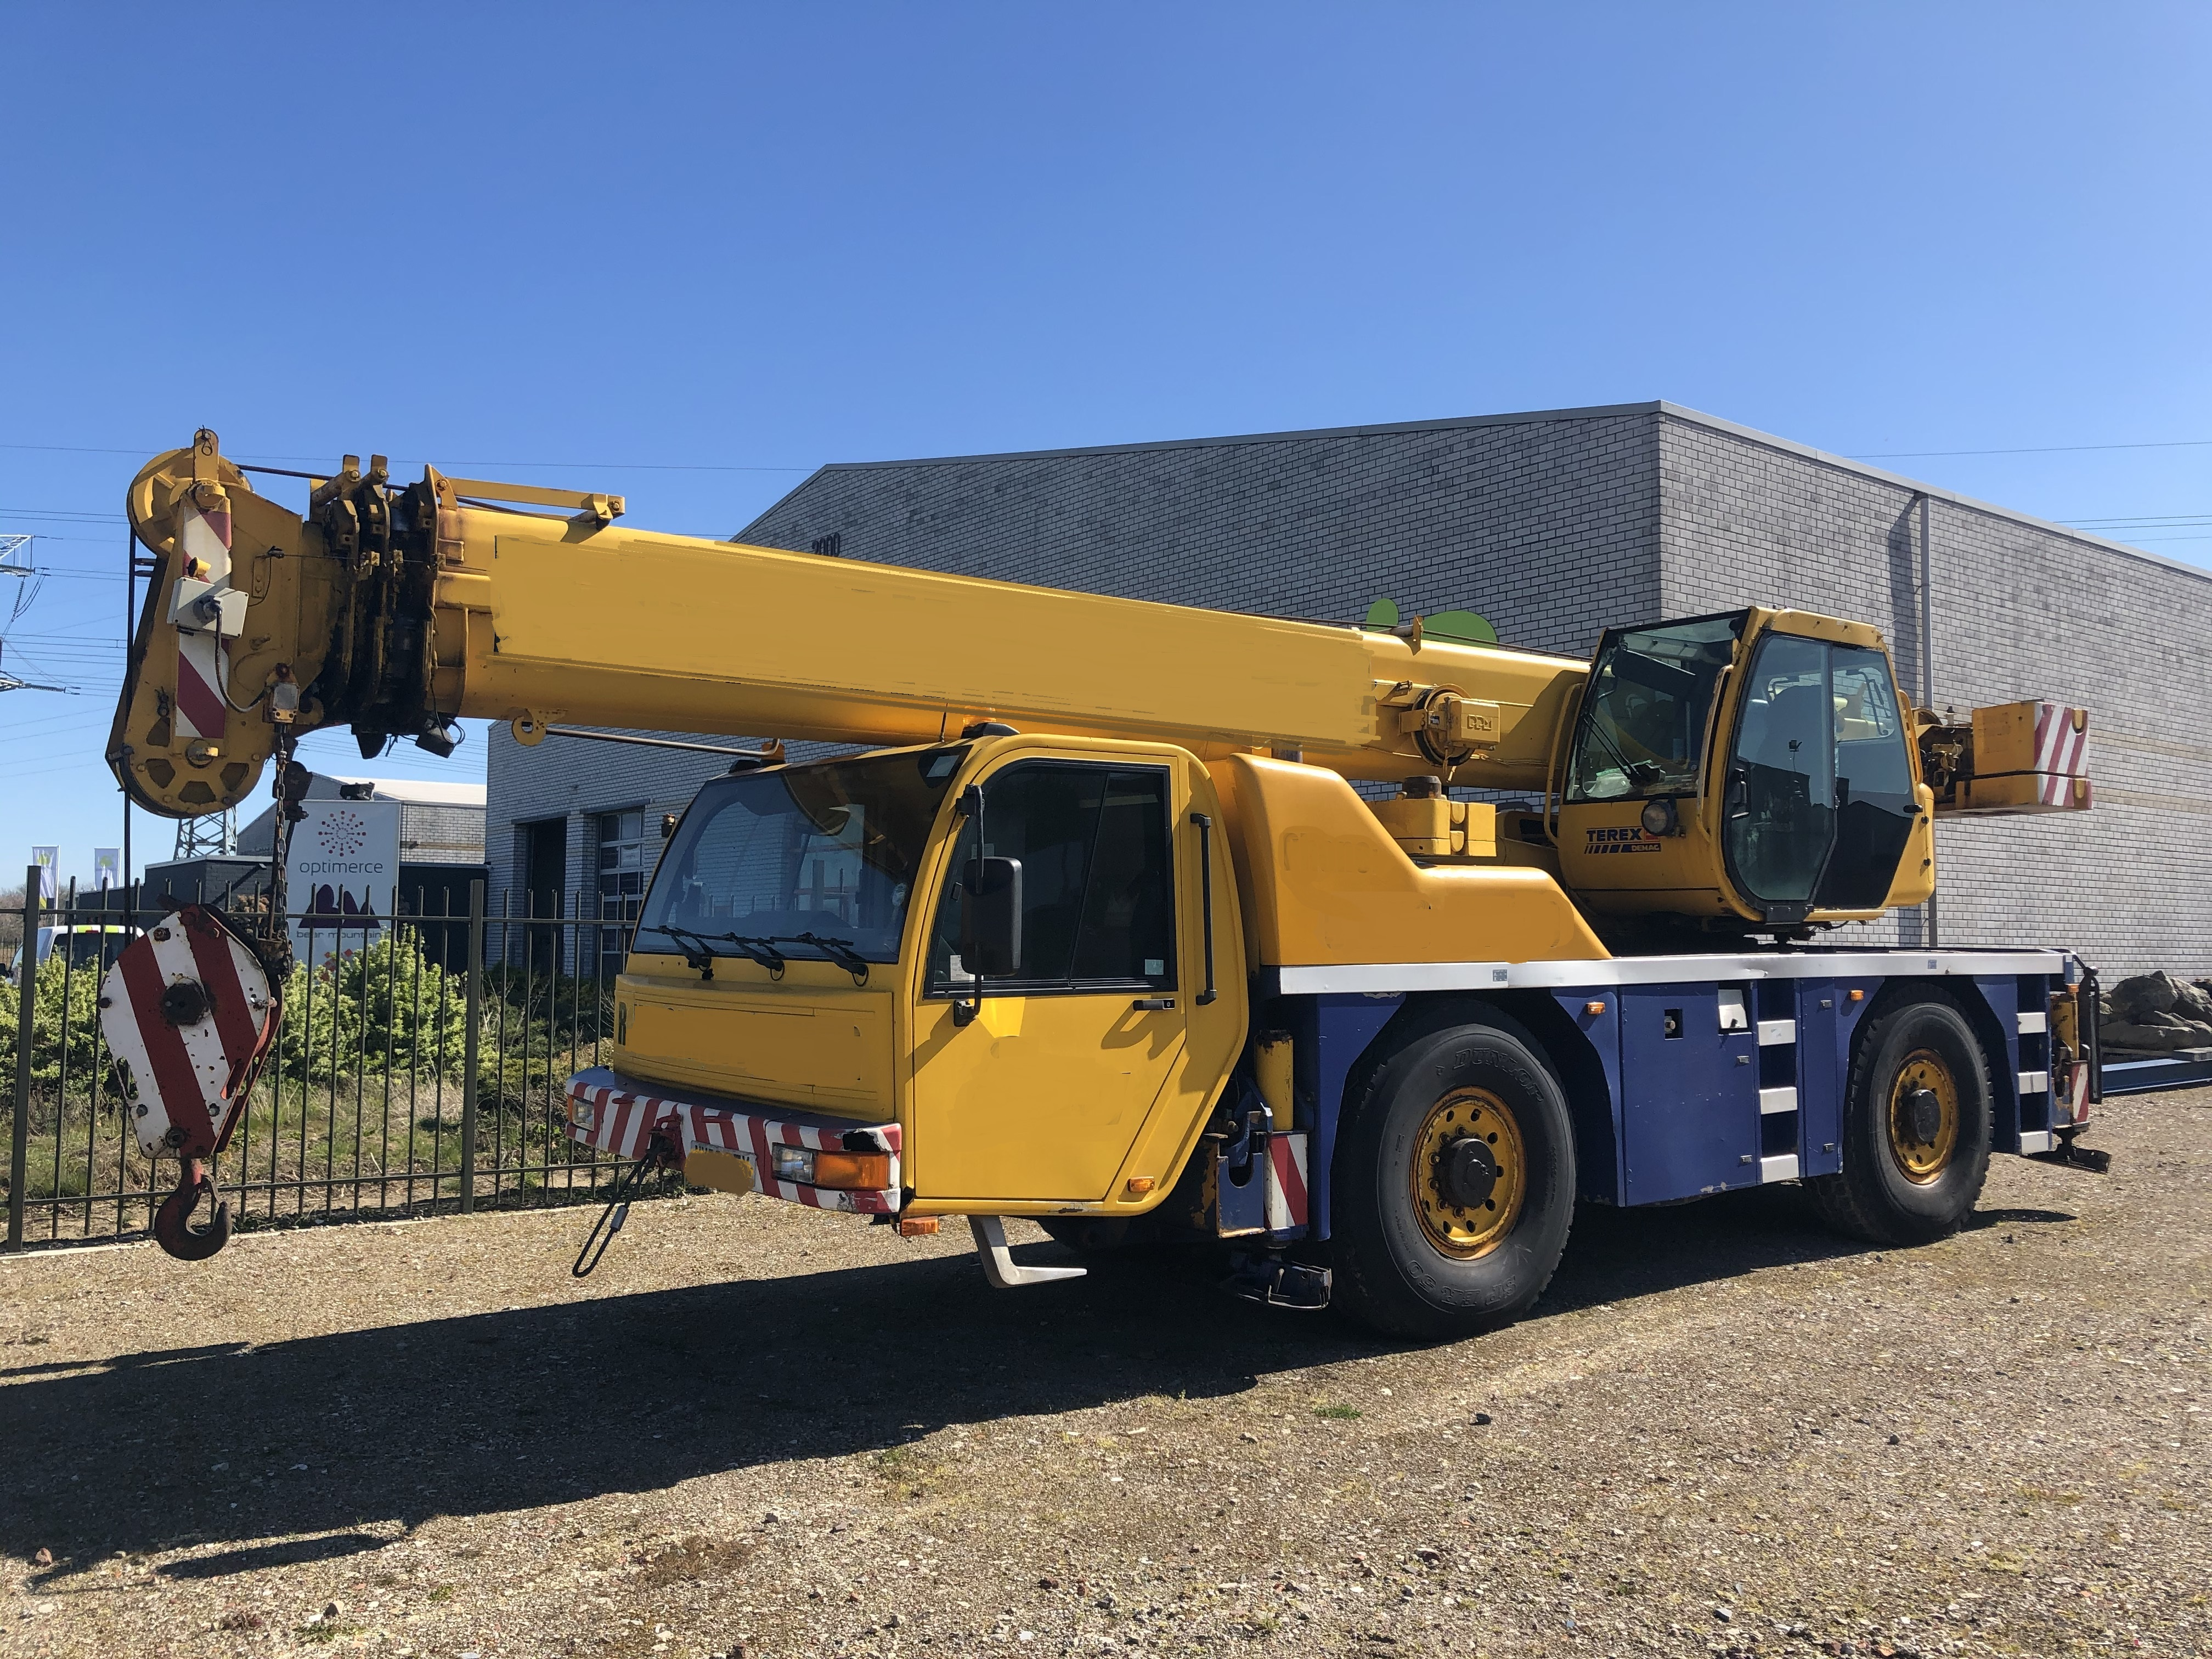 See more photos of this crane